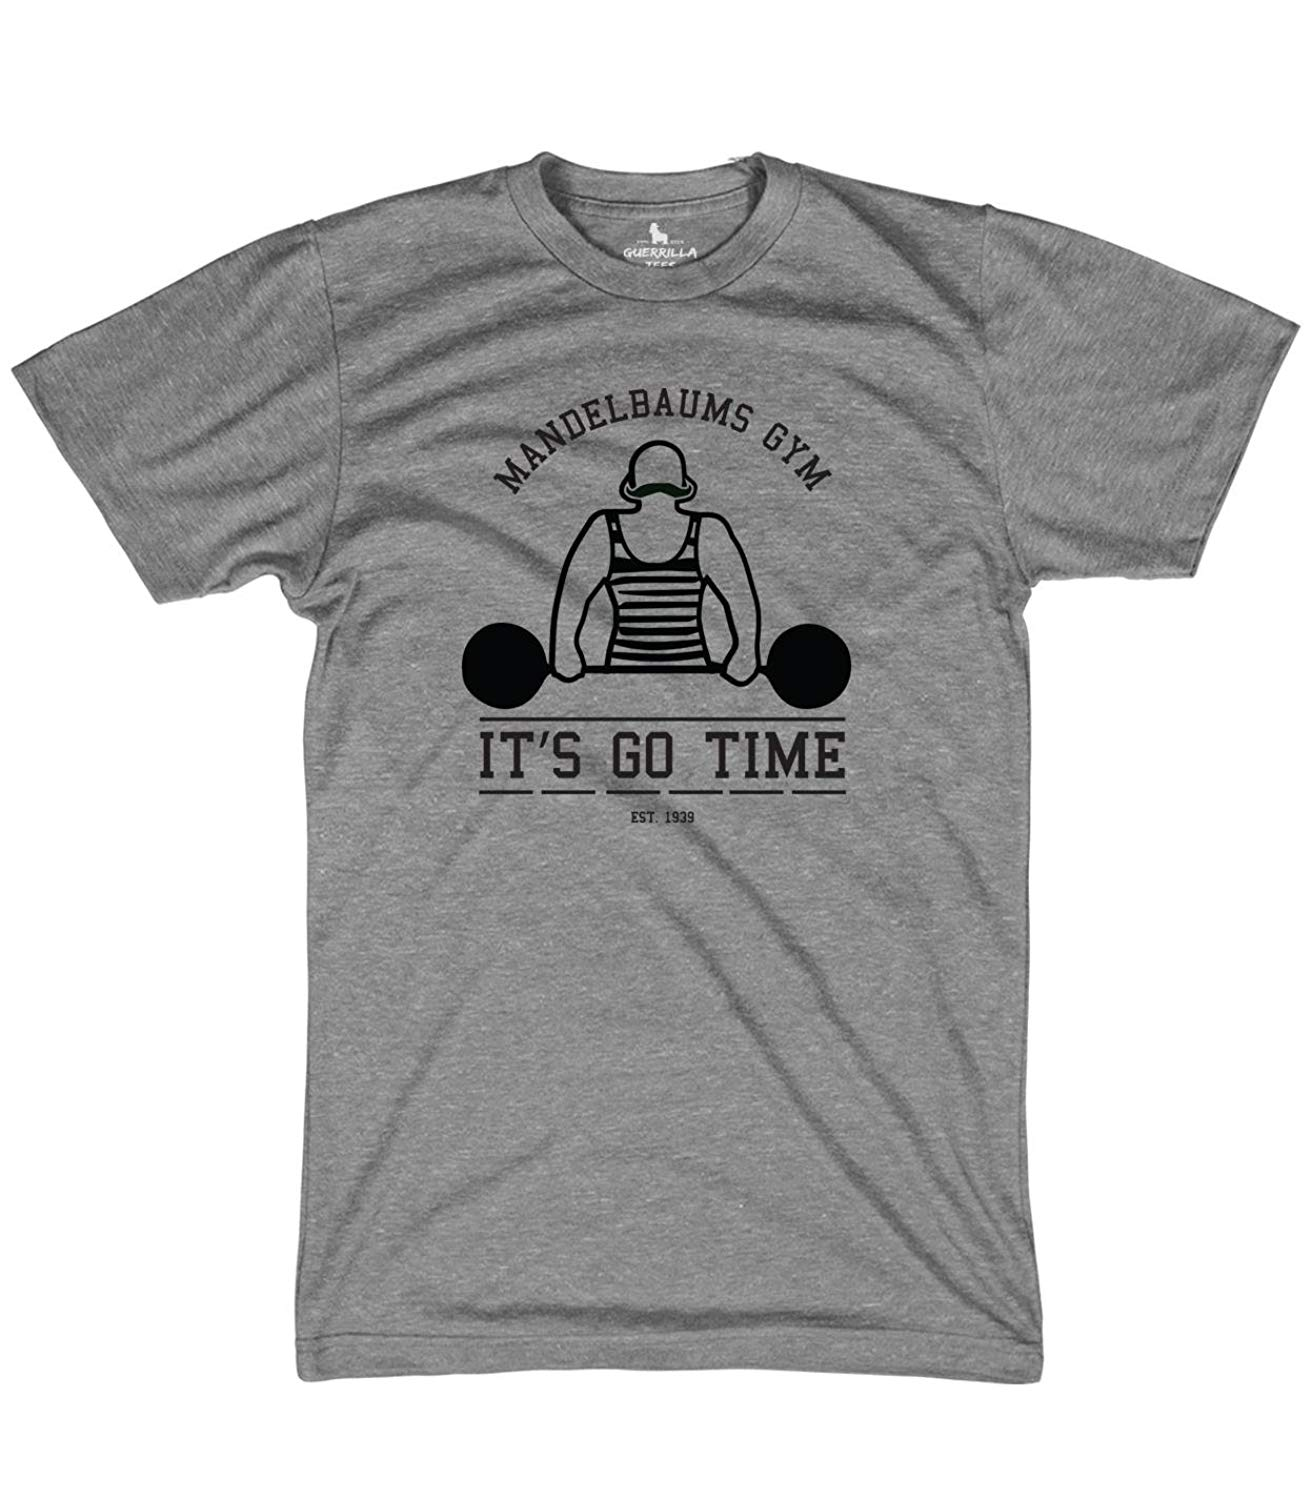 a0d049d9b Get Quotations · Guerrilla Tees Mandelbaums Gym Shirt Funny Graphic tees  Workout and Weightlifting tv Shirt